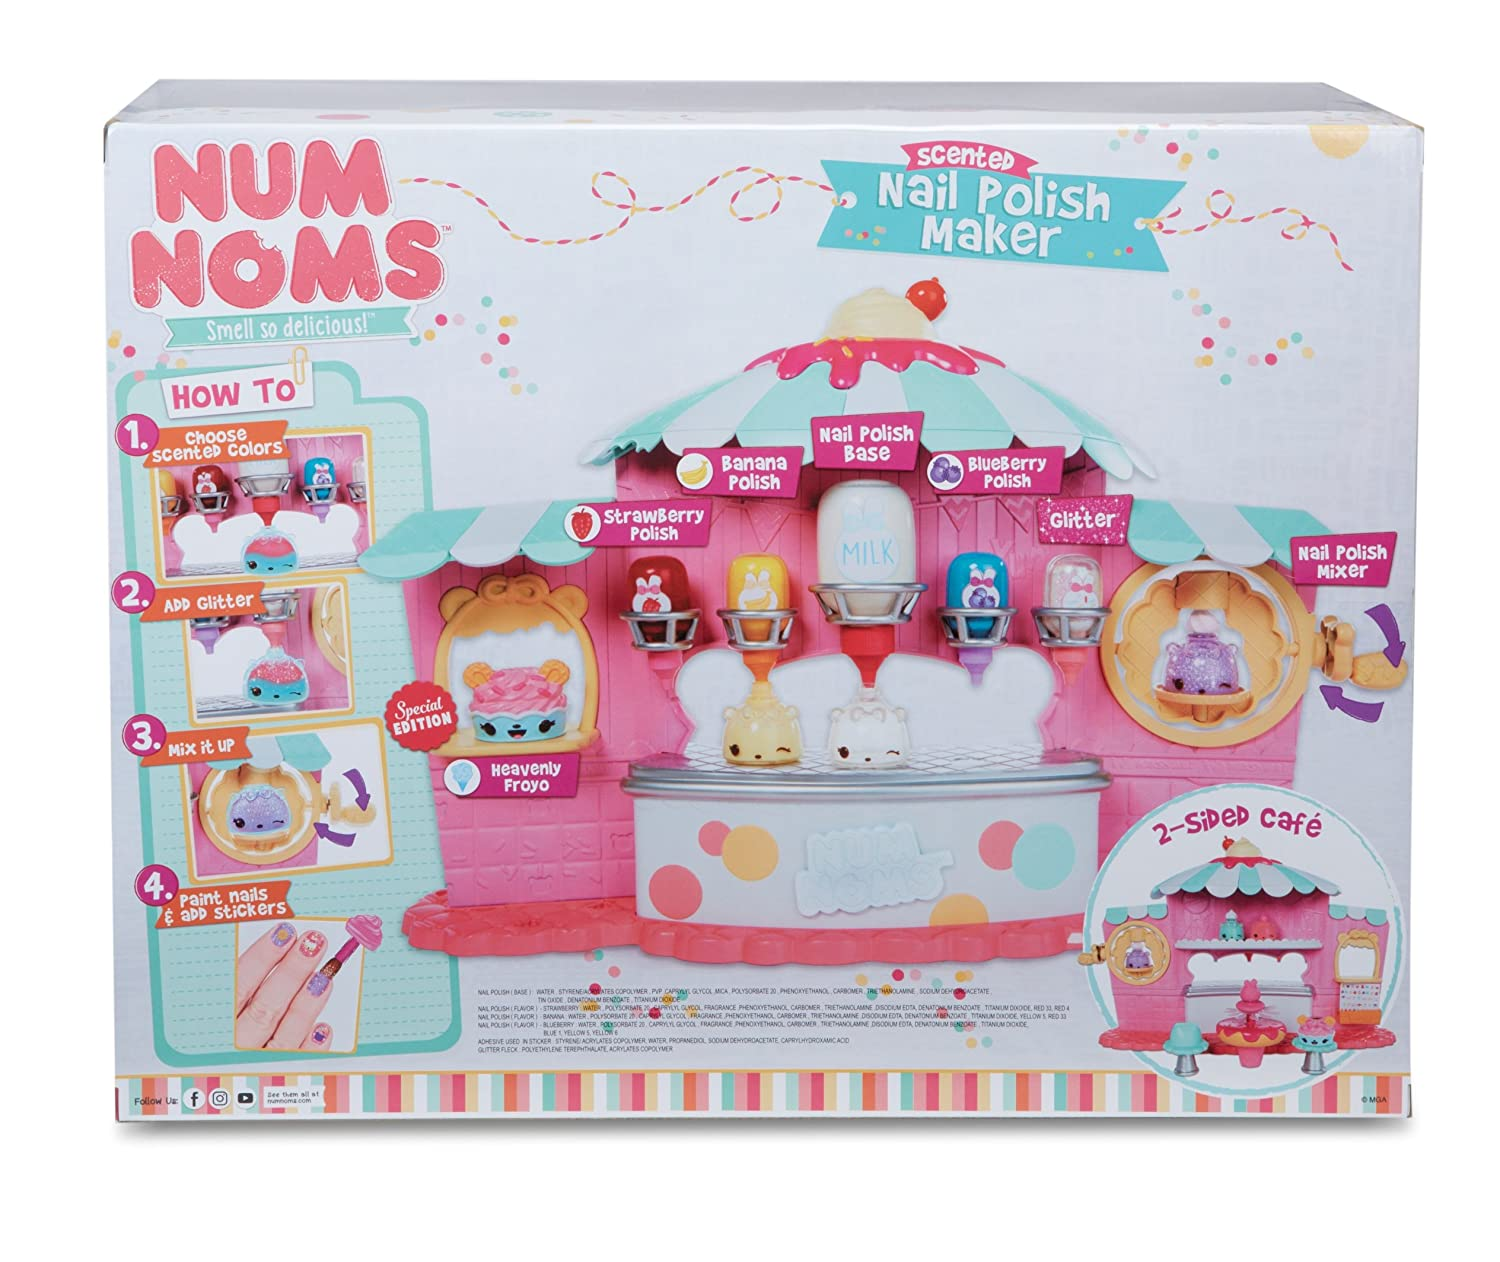 Amazon.com: Num Noms Nail Polish Maker: Toys & Games